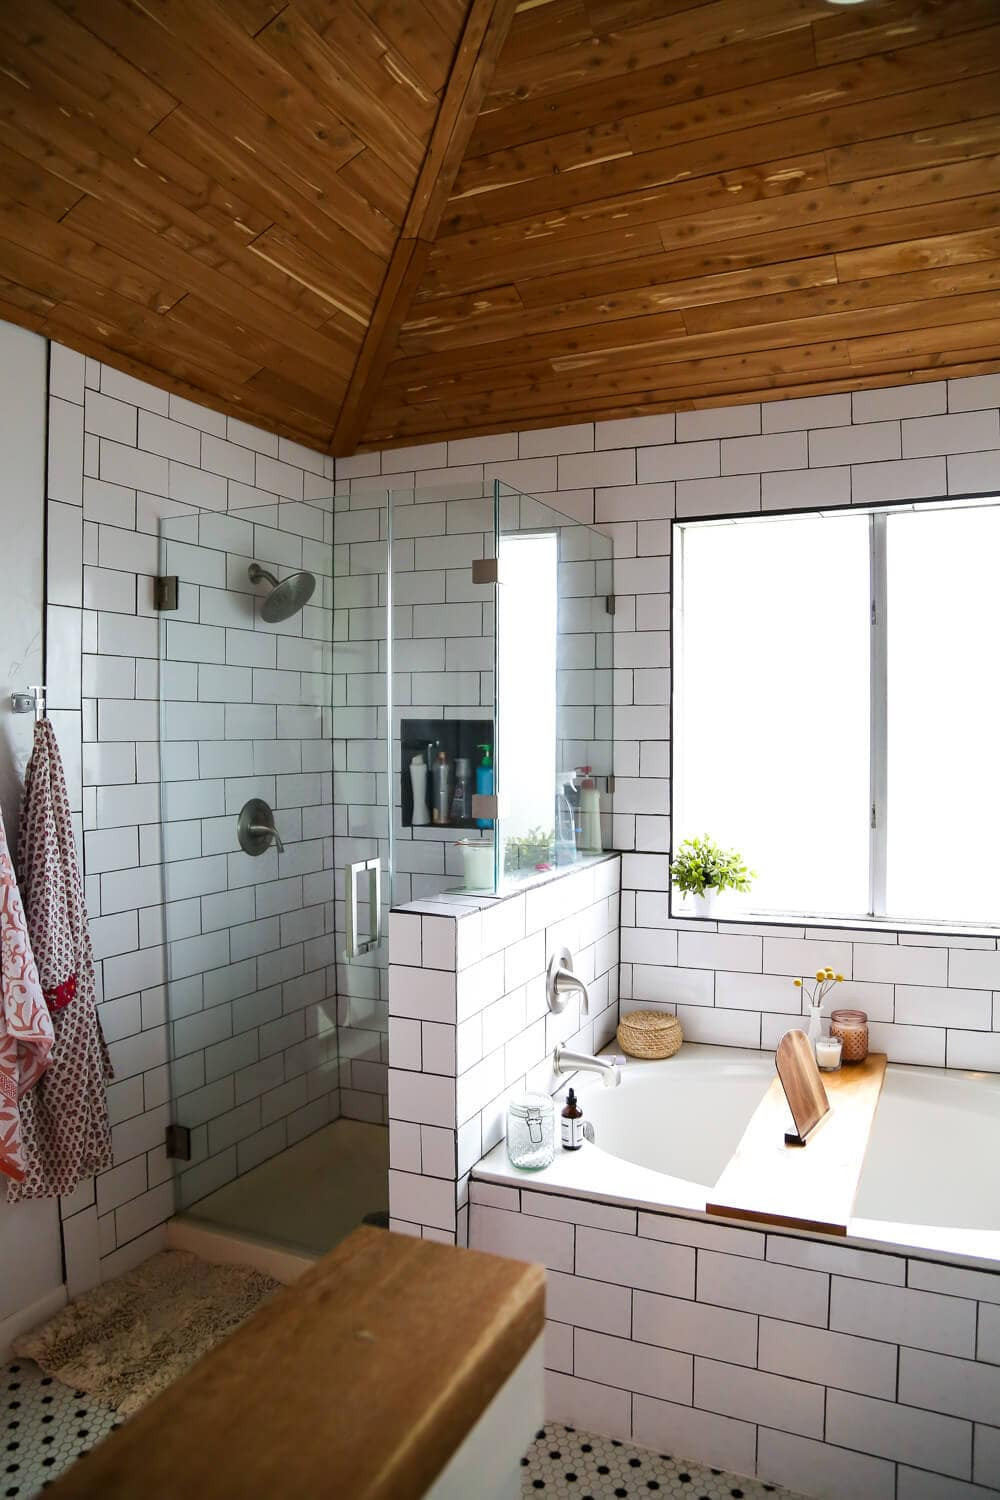 Best ideas about Diy Bathroom Remodel . Save or Pin Our DIY Bud Bathroom Renovation Love & Renovations Now.